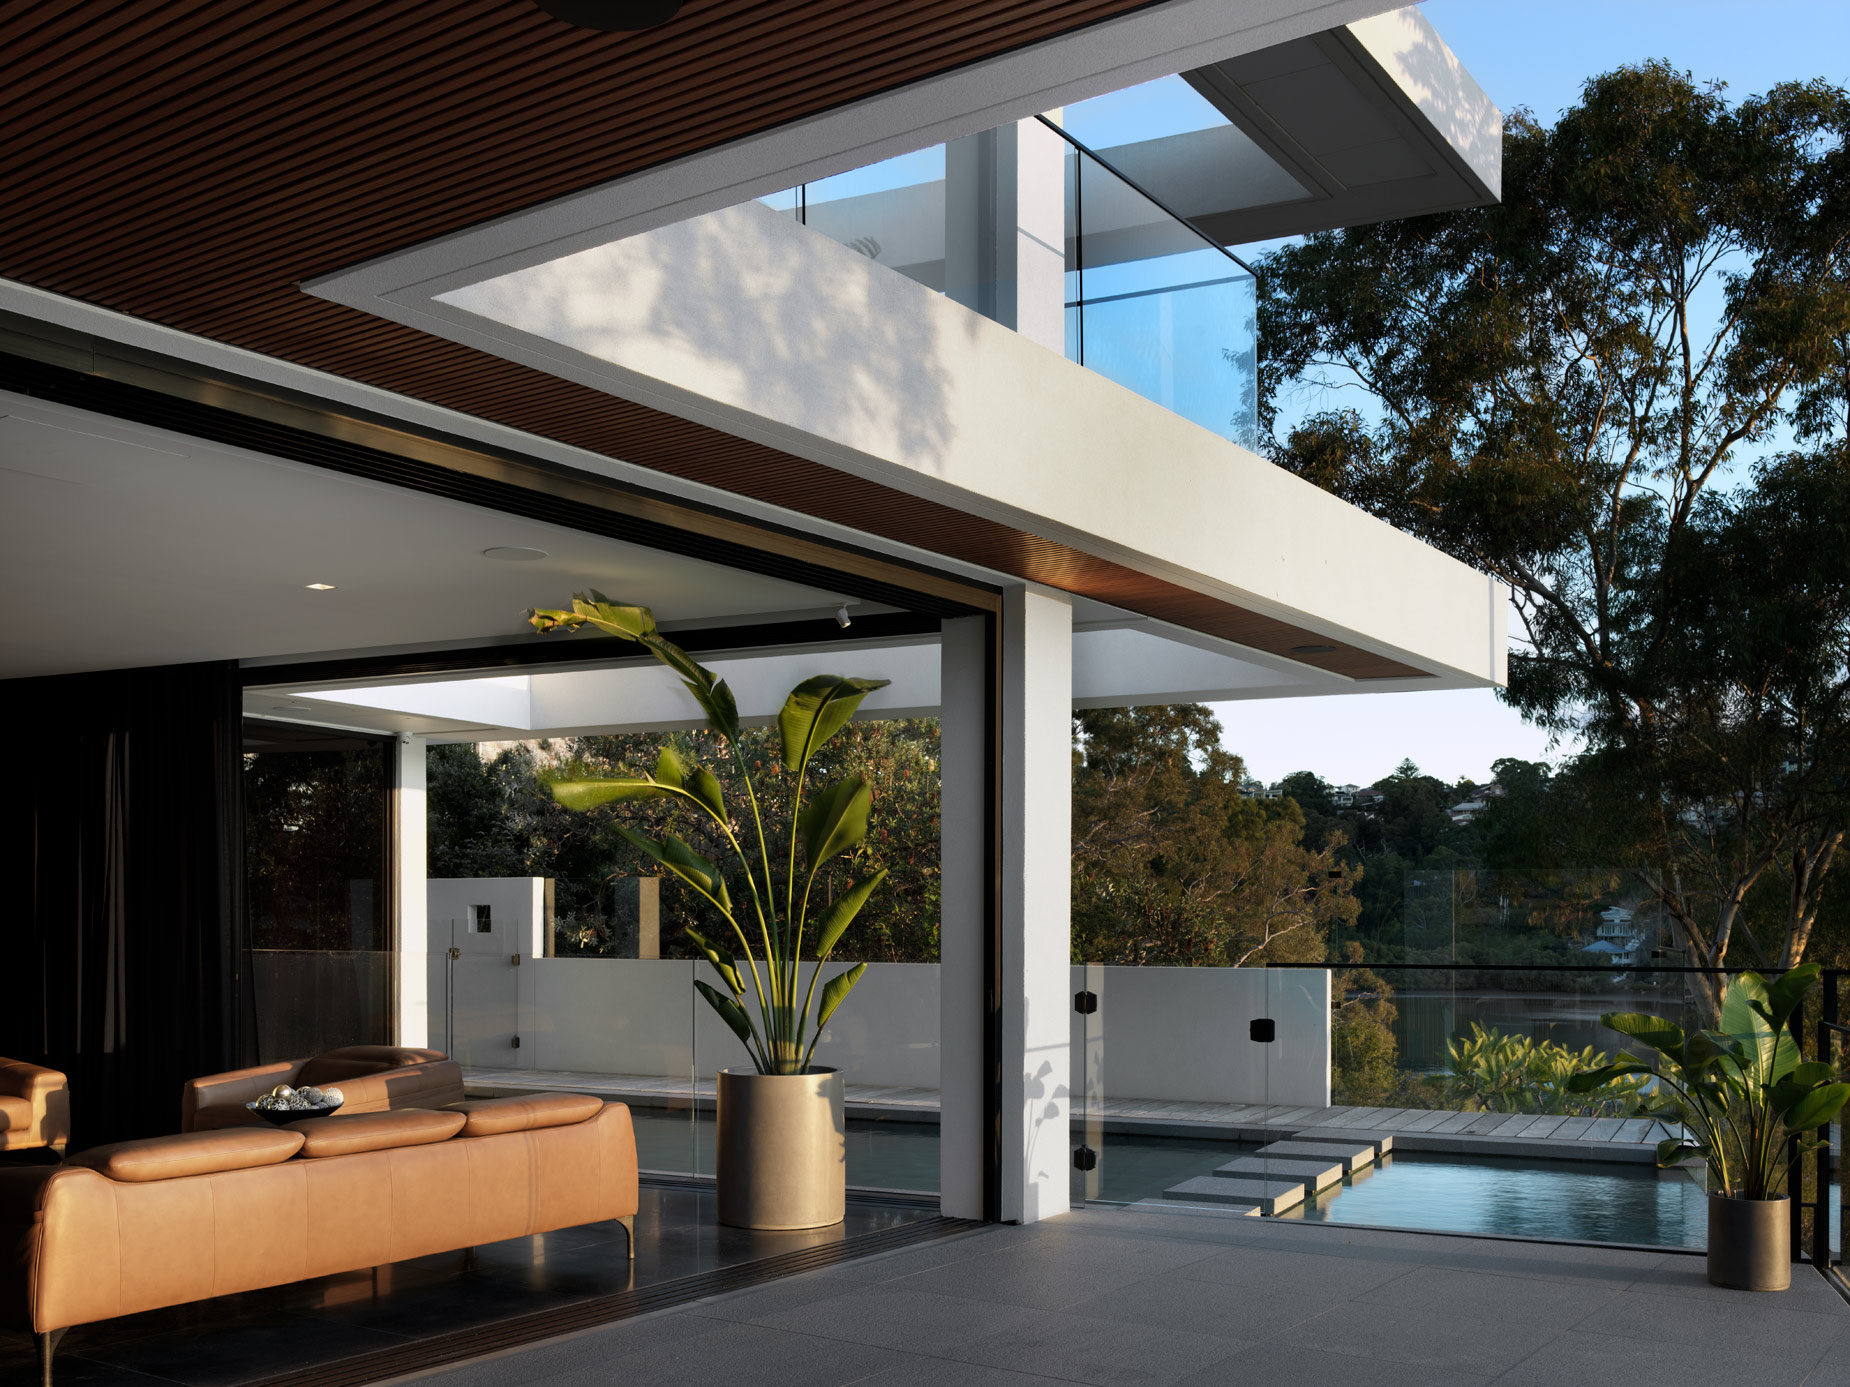 luke-butterly-2020-Oyster-Bay-House-by-Couvaras-Architecture-Sydney-NSW-41